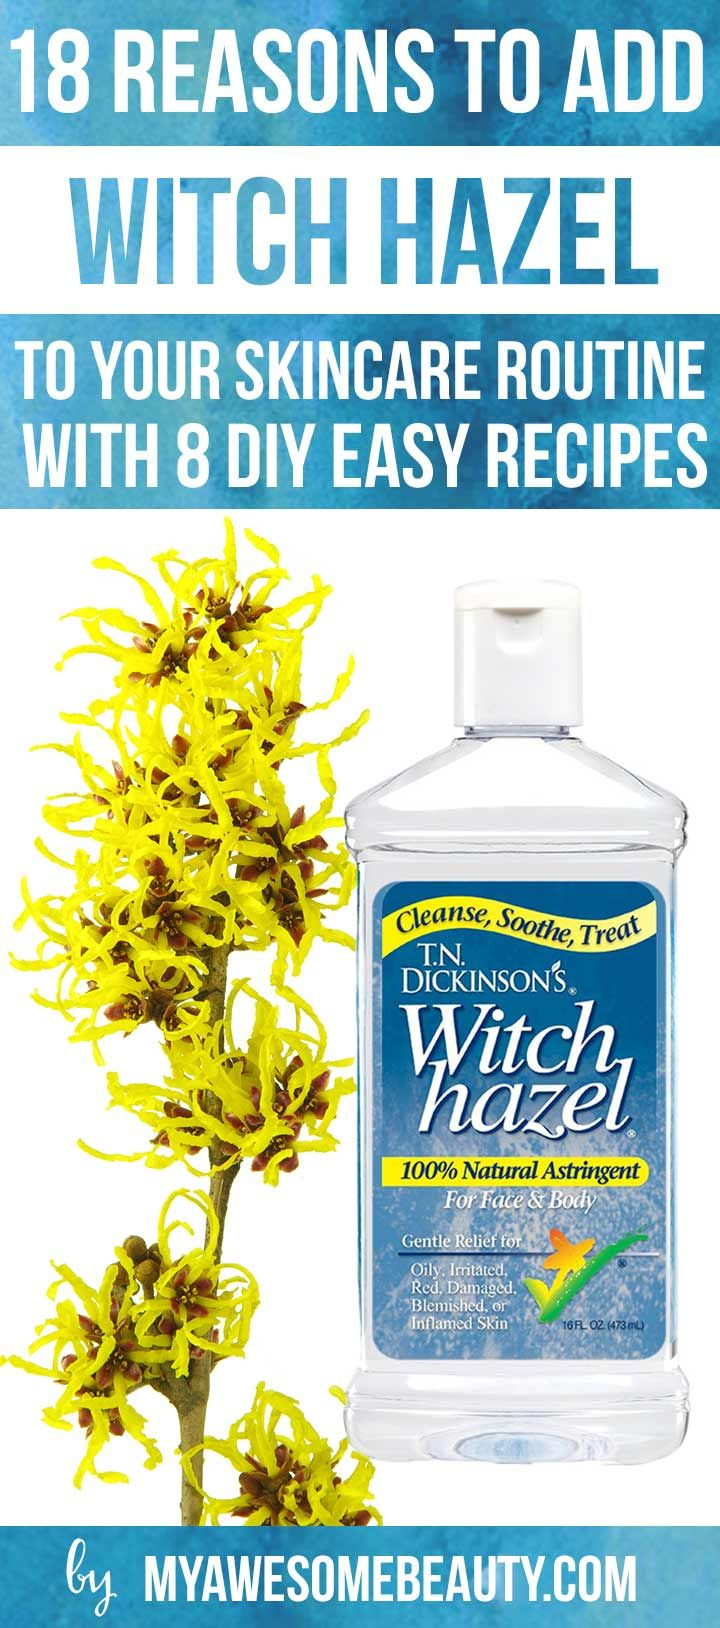 There are many unknown witch hazel uses and benefits. Learn why and how to use it effectively to cleanse, soothe and treat several skin issues naturally. ,  Erica Nikirk